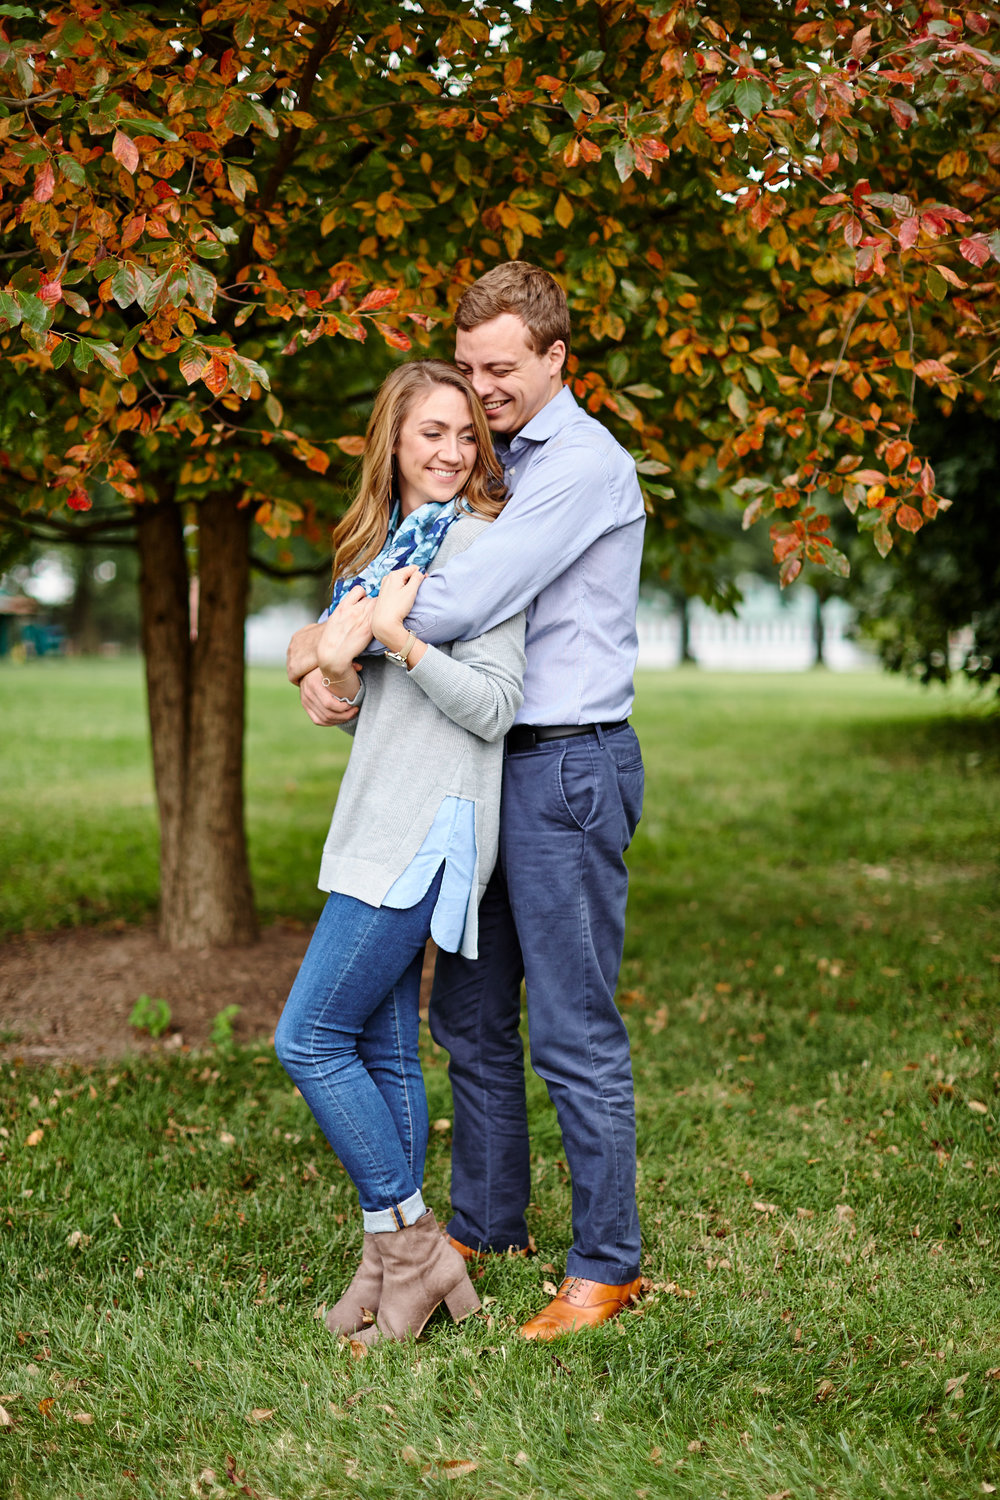 Science Center in Forest Park Engagement Session by St Louis Wedding Photographers Oldani Photography 14.jpg